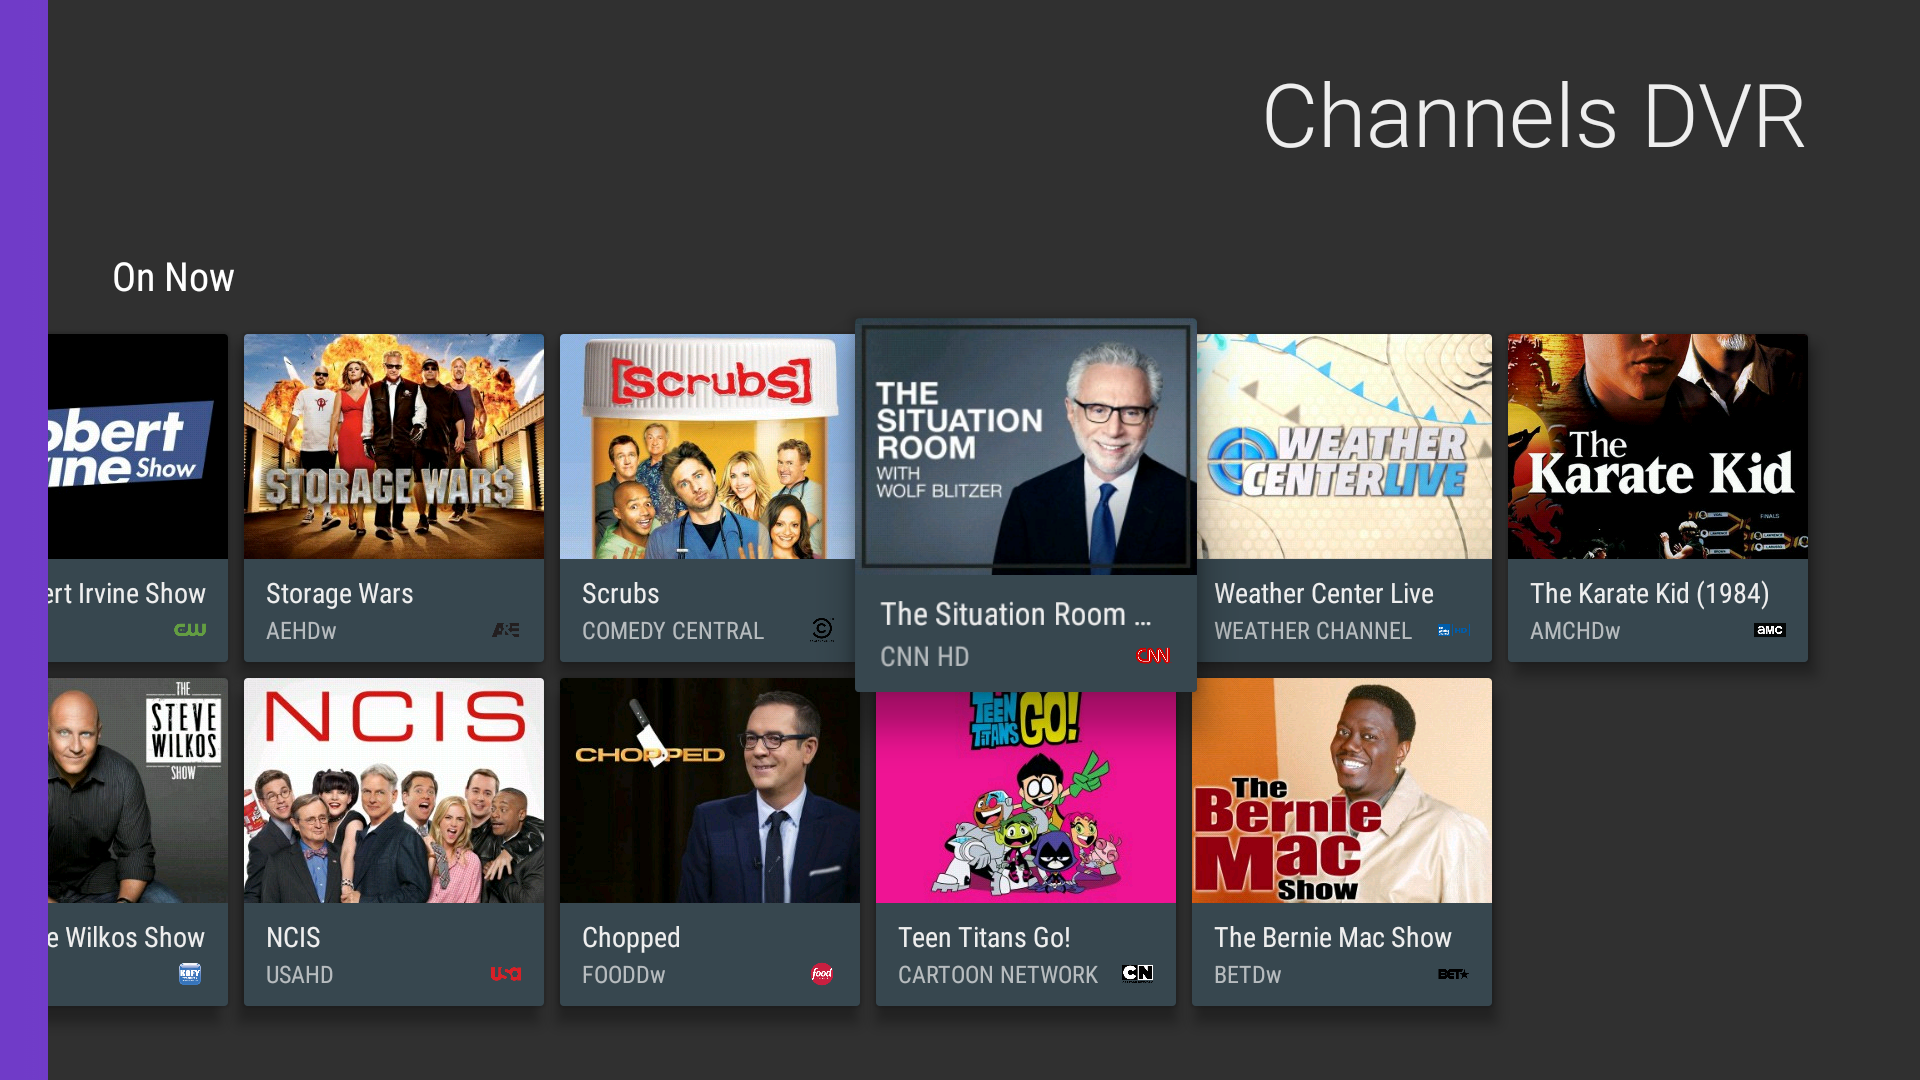 NEW: Android TV app for Channels DVR (experimental) - DVR